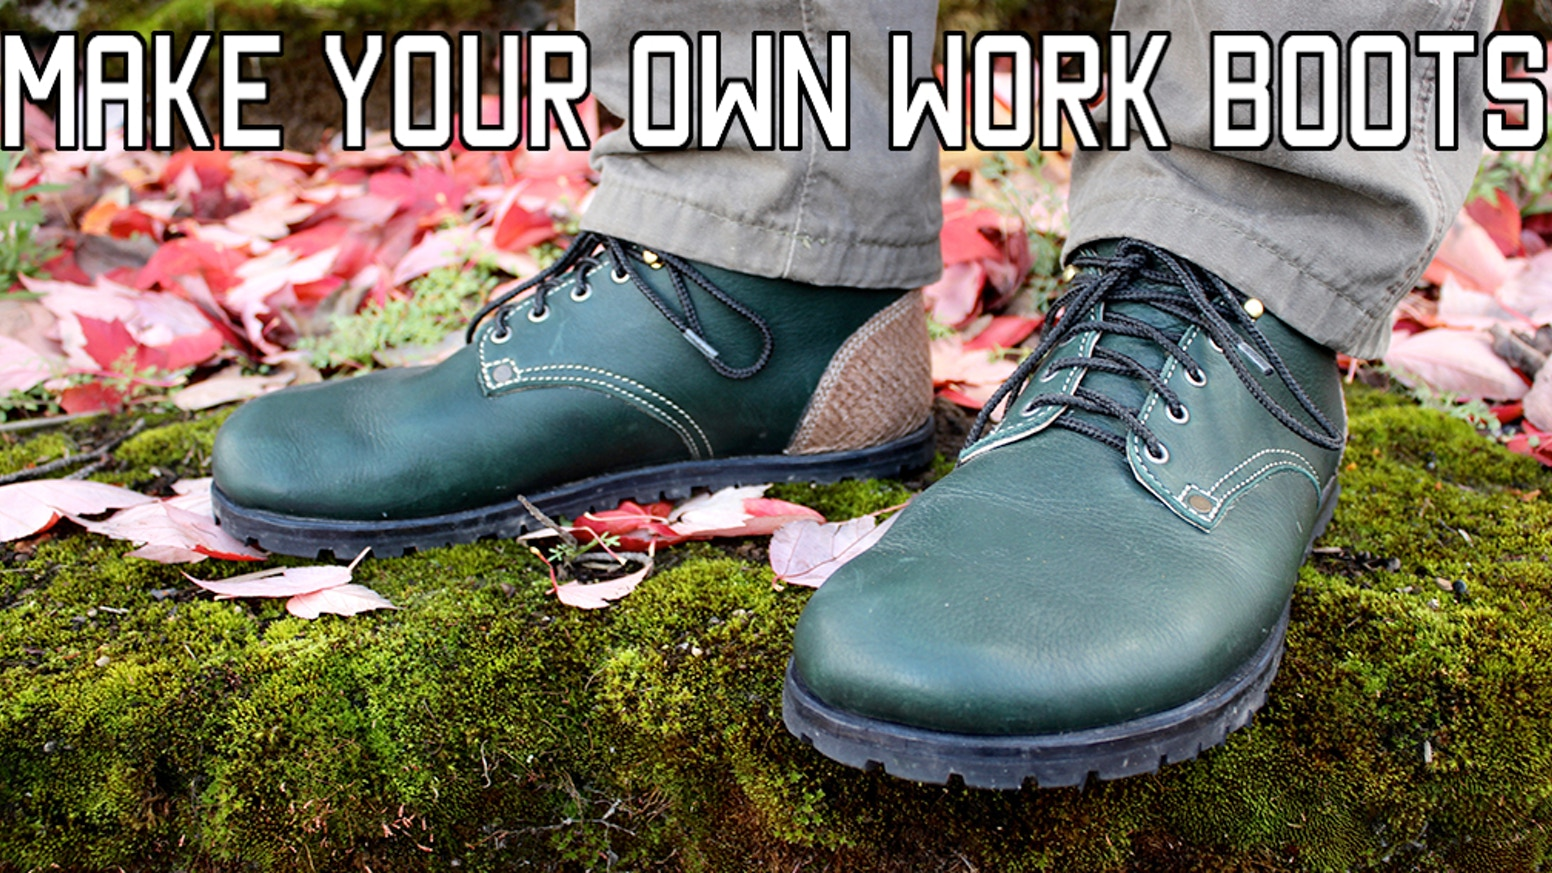 Make your own Foot-Shaped Work Boots! Instructional video